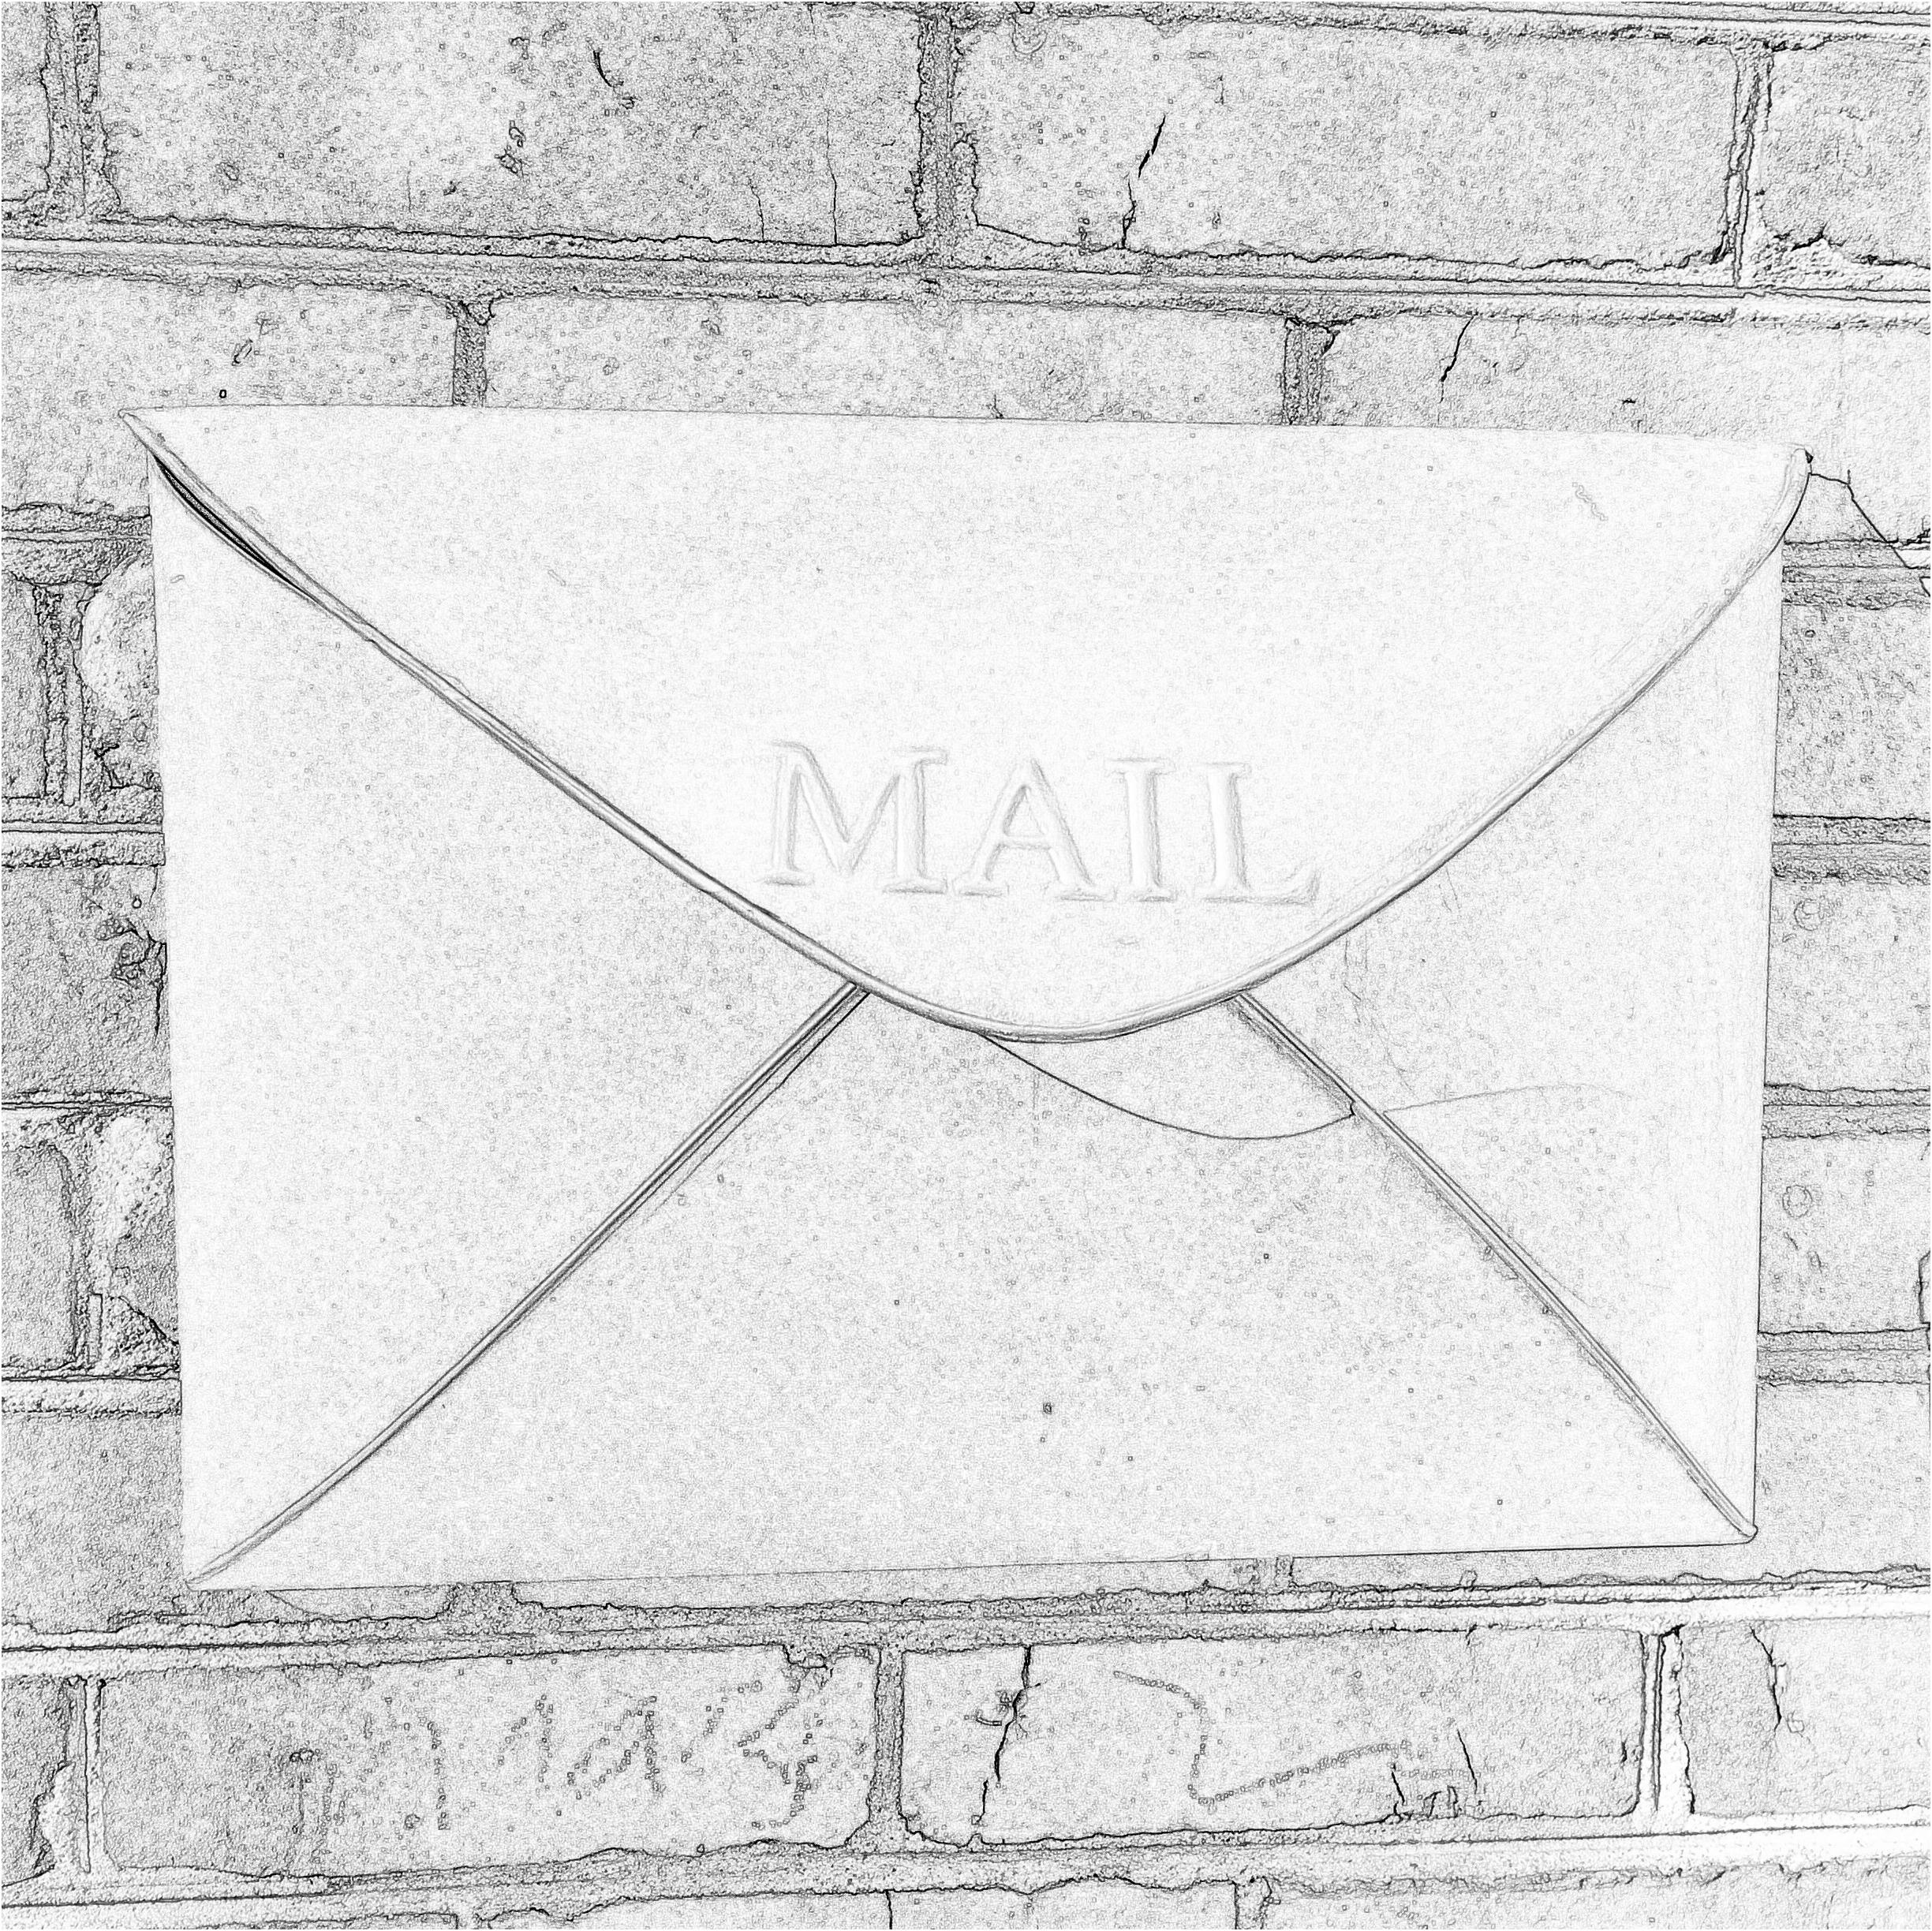 Mailbox in downtown Charlottesville, Virginia